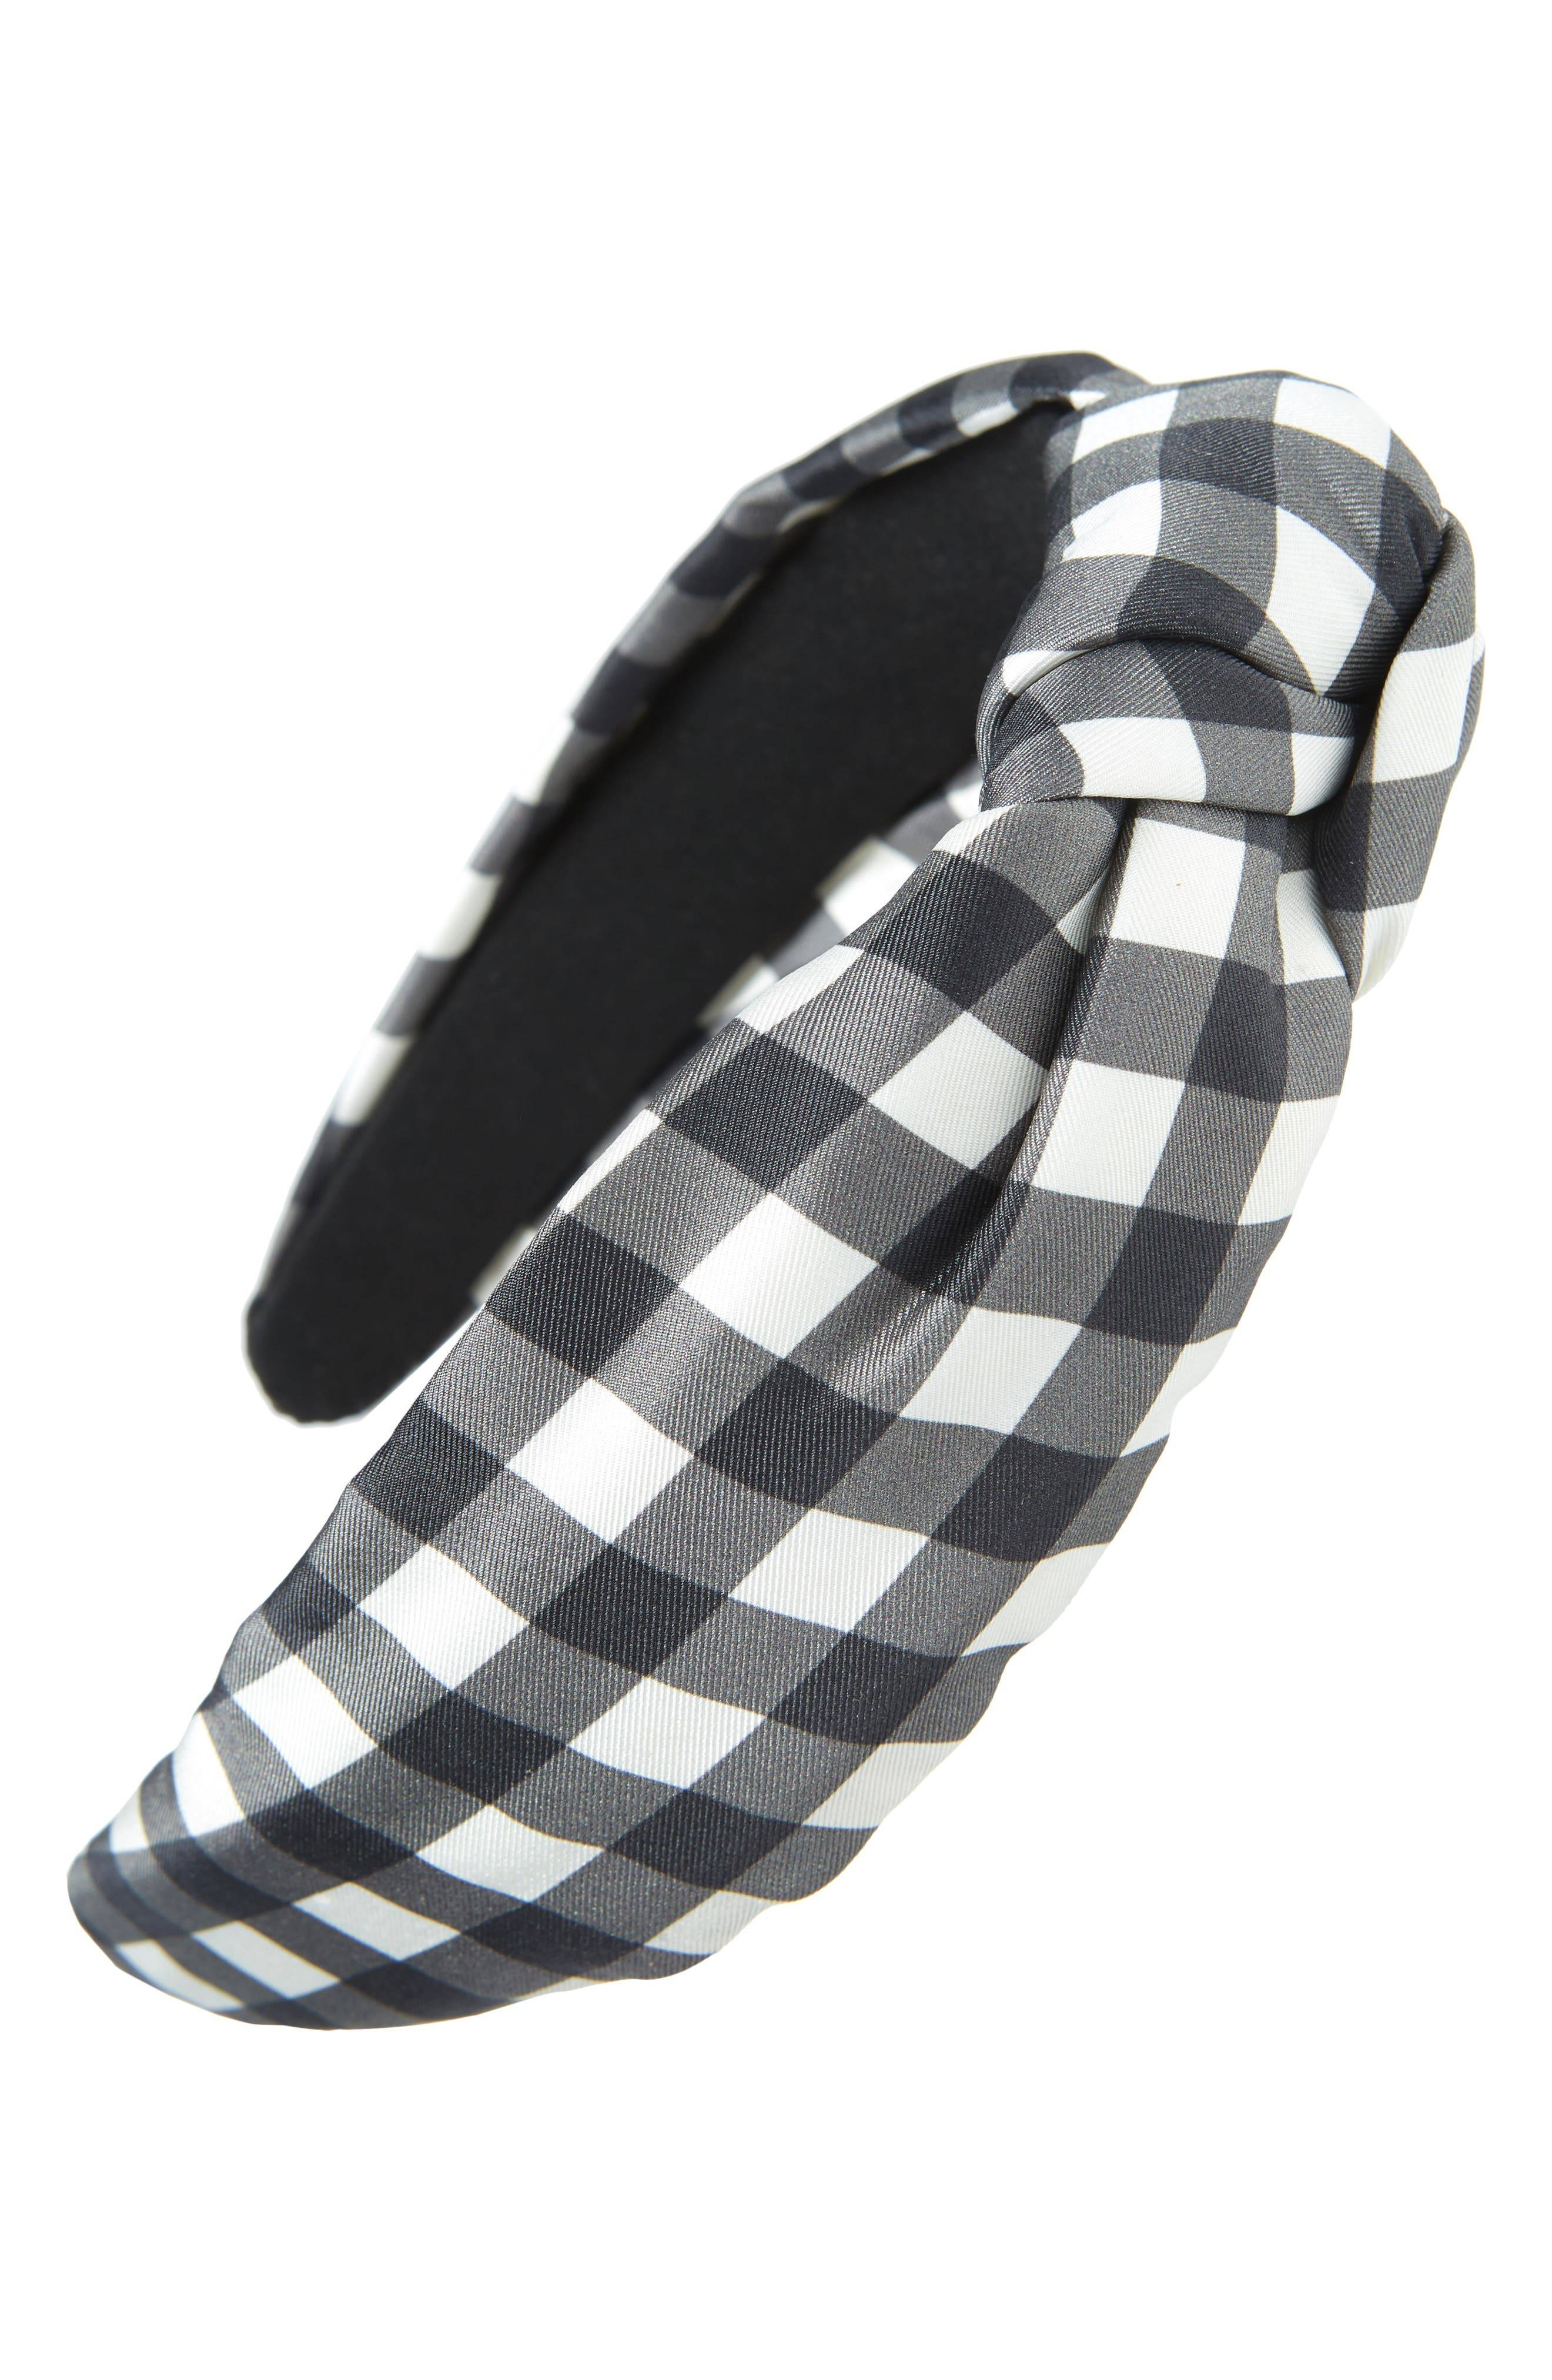 Kate Spade New York Garden Gingham Knotted Silk Headband, Size One Size - Black